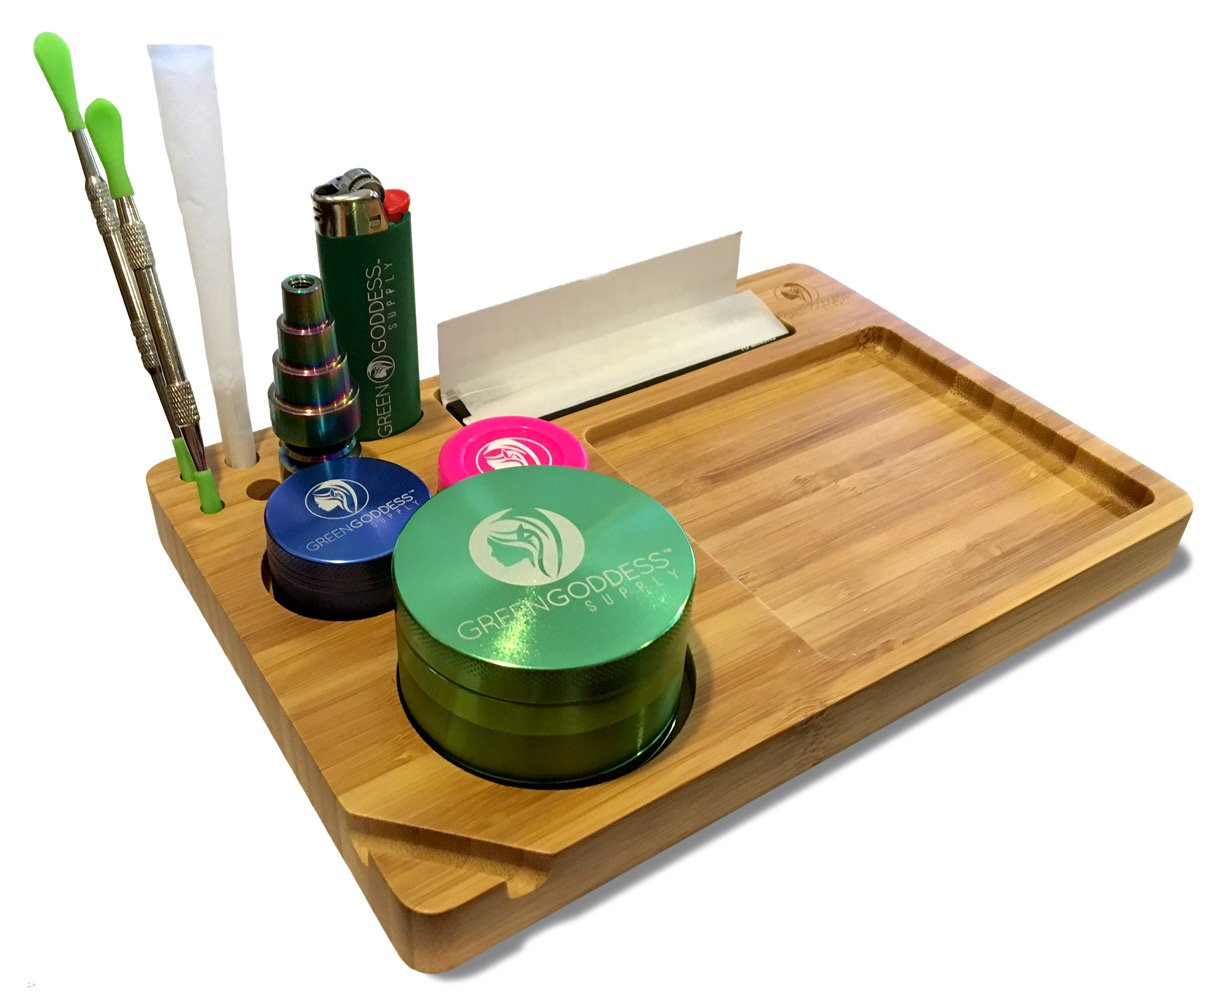 High Quality Wooden Bamboo Rolling Tray (9'' x 6'') by Green Goddess Supply